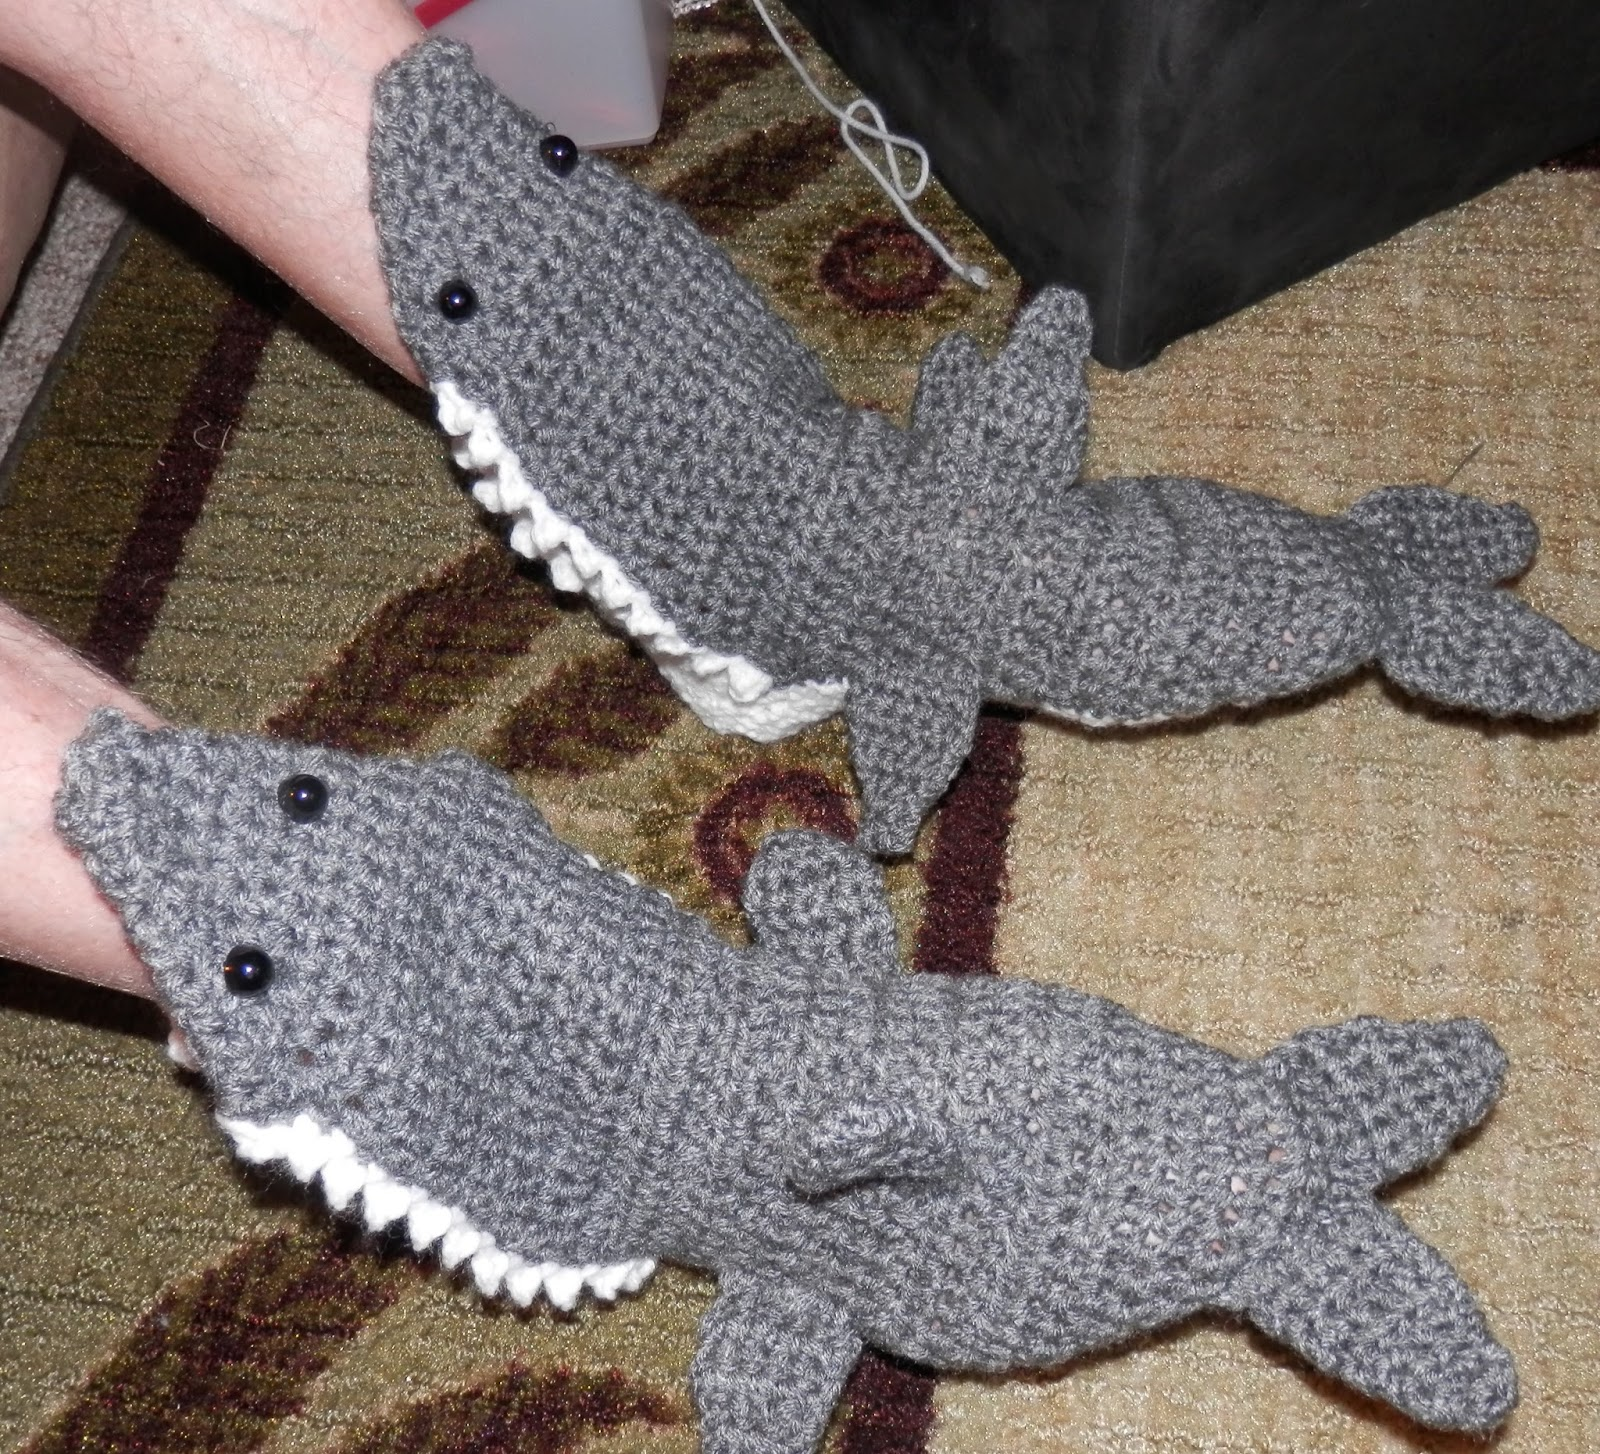 Crochet Shark Shoes Free Pattern : Karens Crocheted Garden of Colors: Shark Slippers